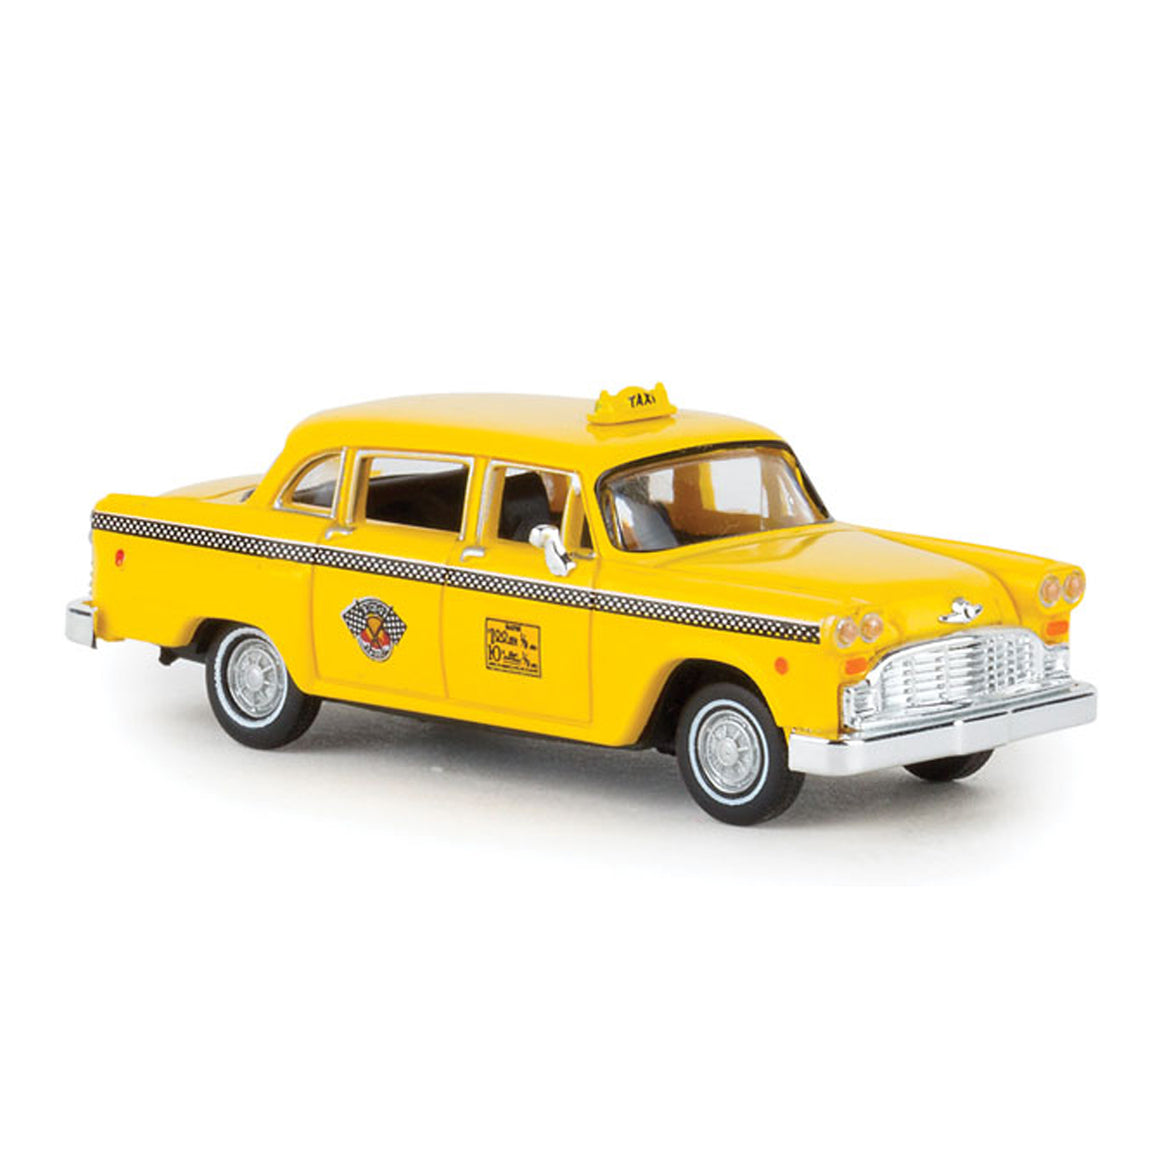 HO Scale: Checker Marathon Taxicab - New York City